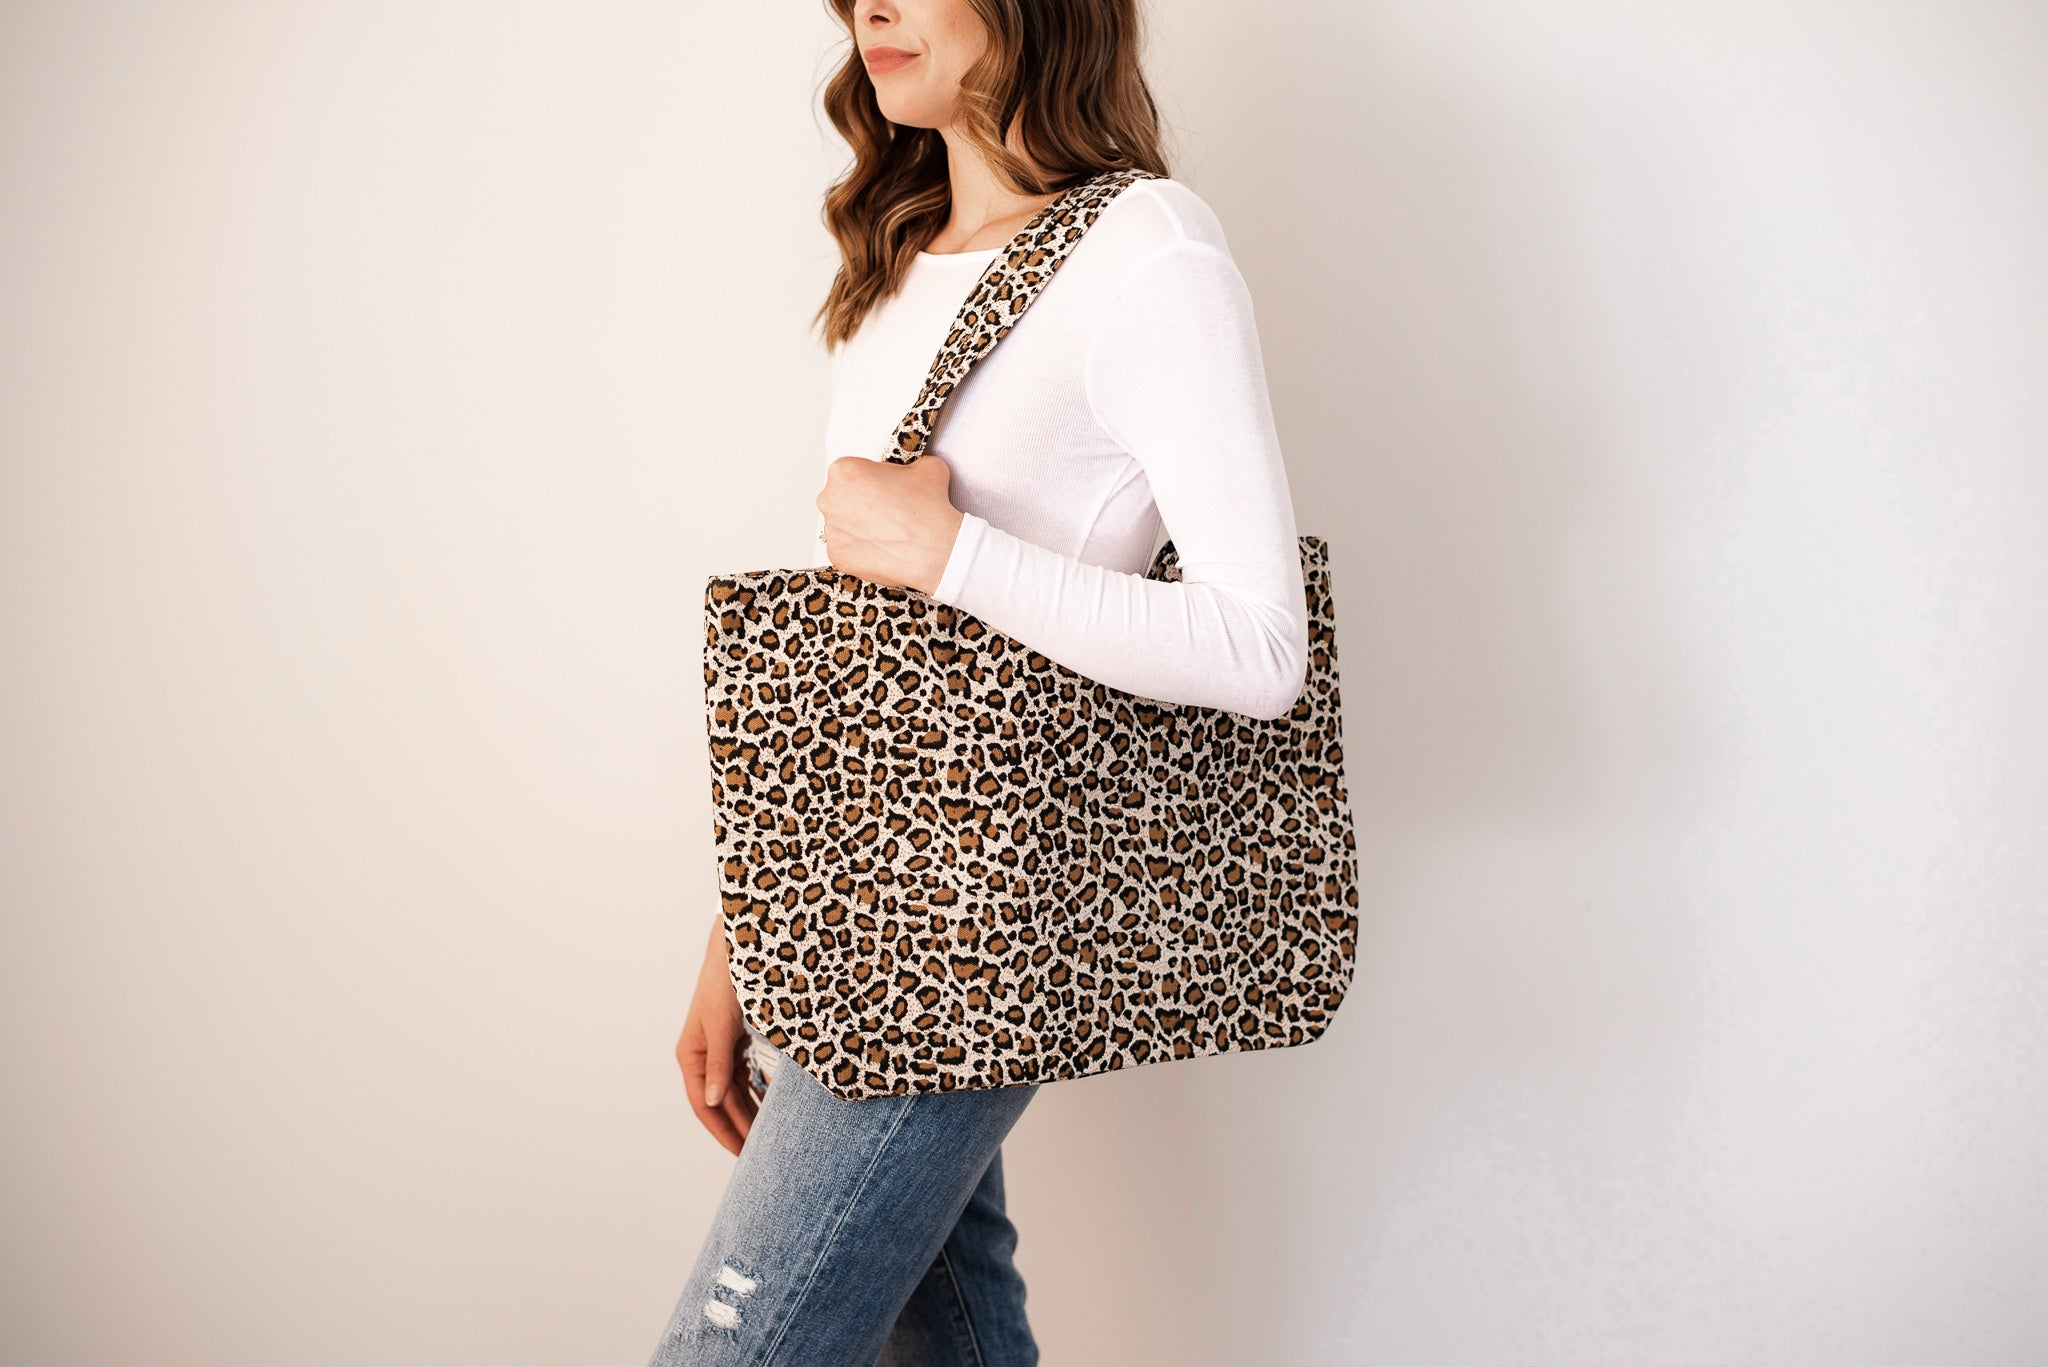 Fierce of Nature Tote Bag in Beige/Brown / FINAL SALE